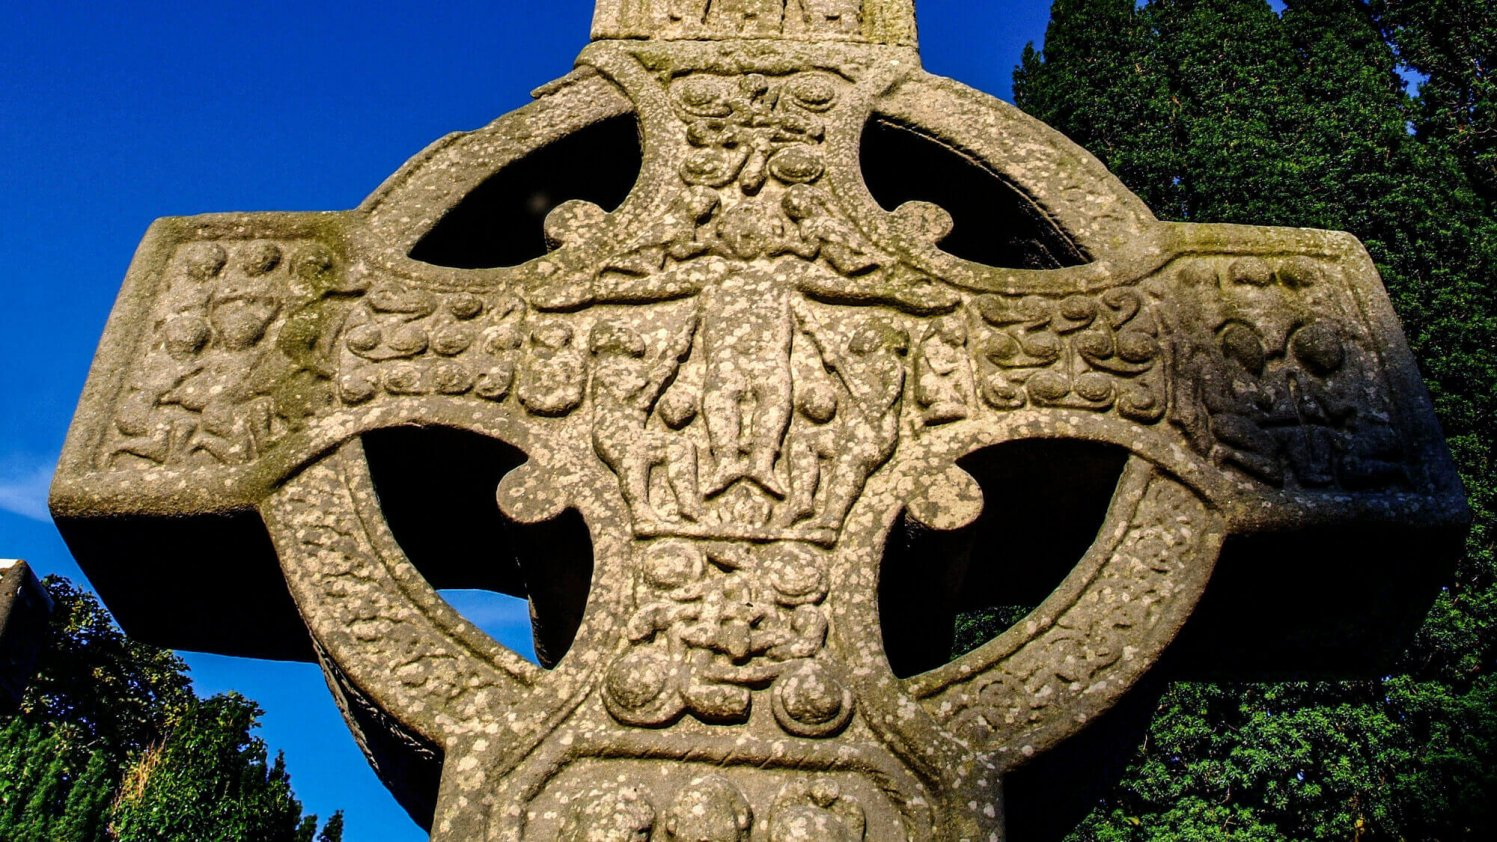 Detail of decoration on High Celtic Cross at Monasterboice in Ireland